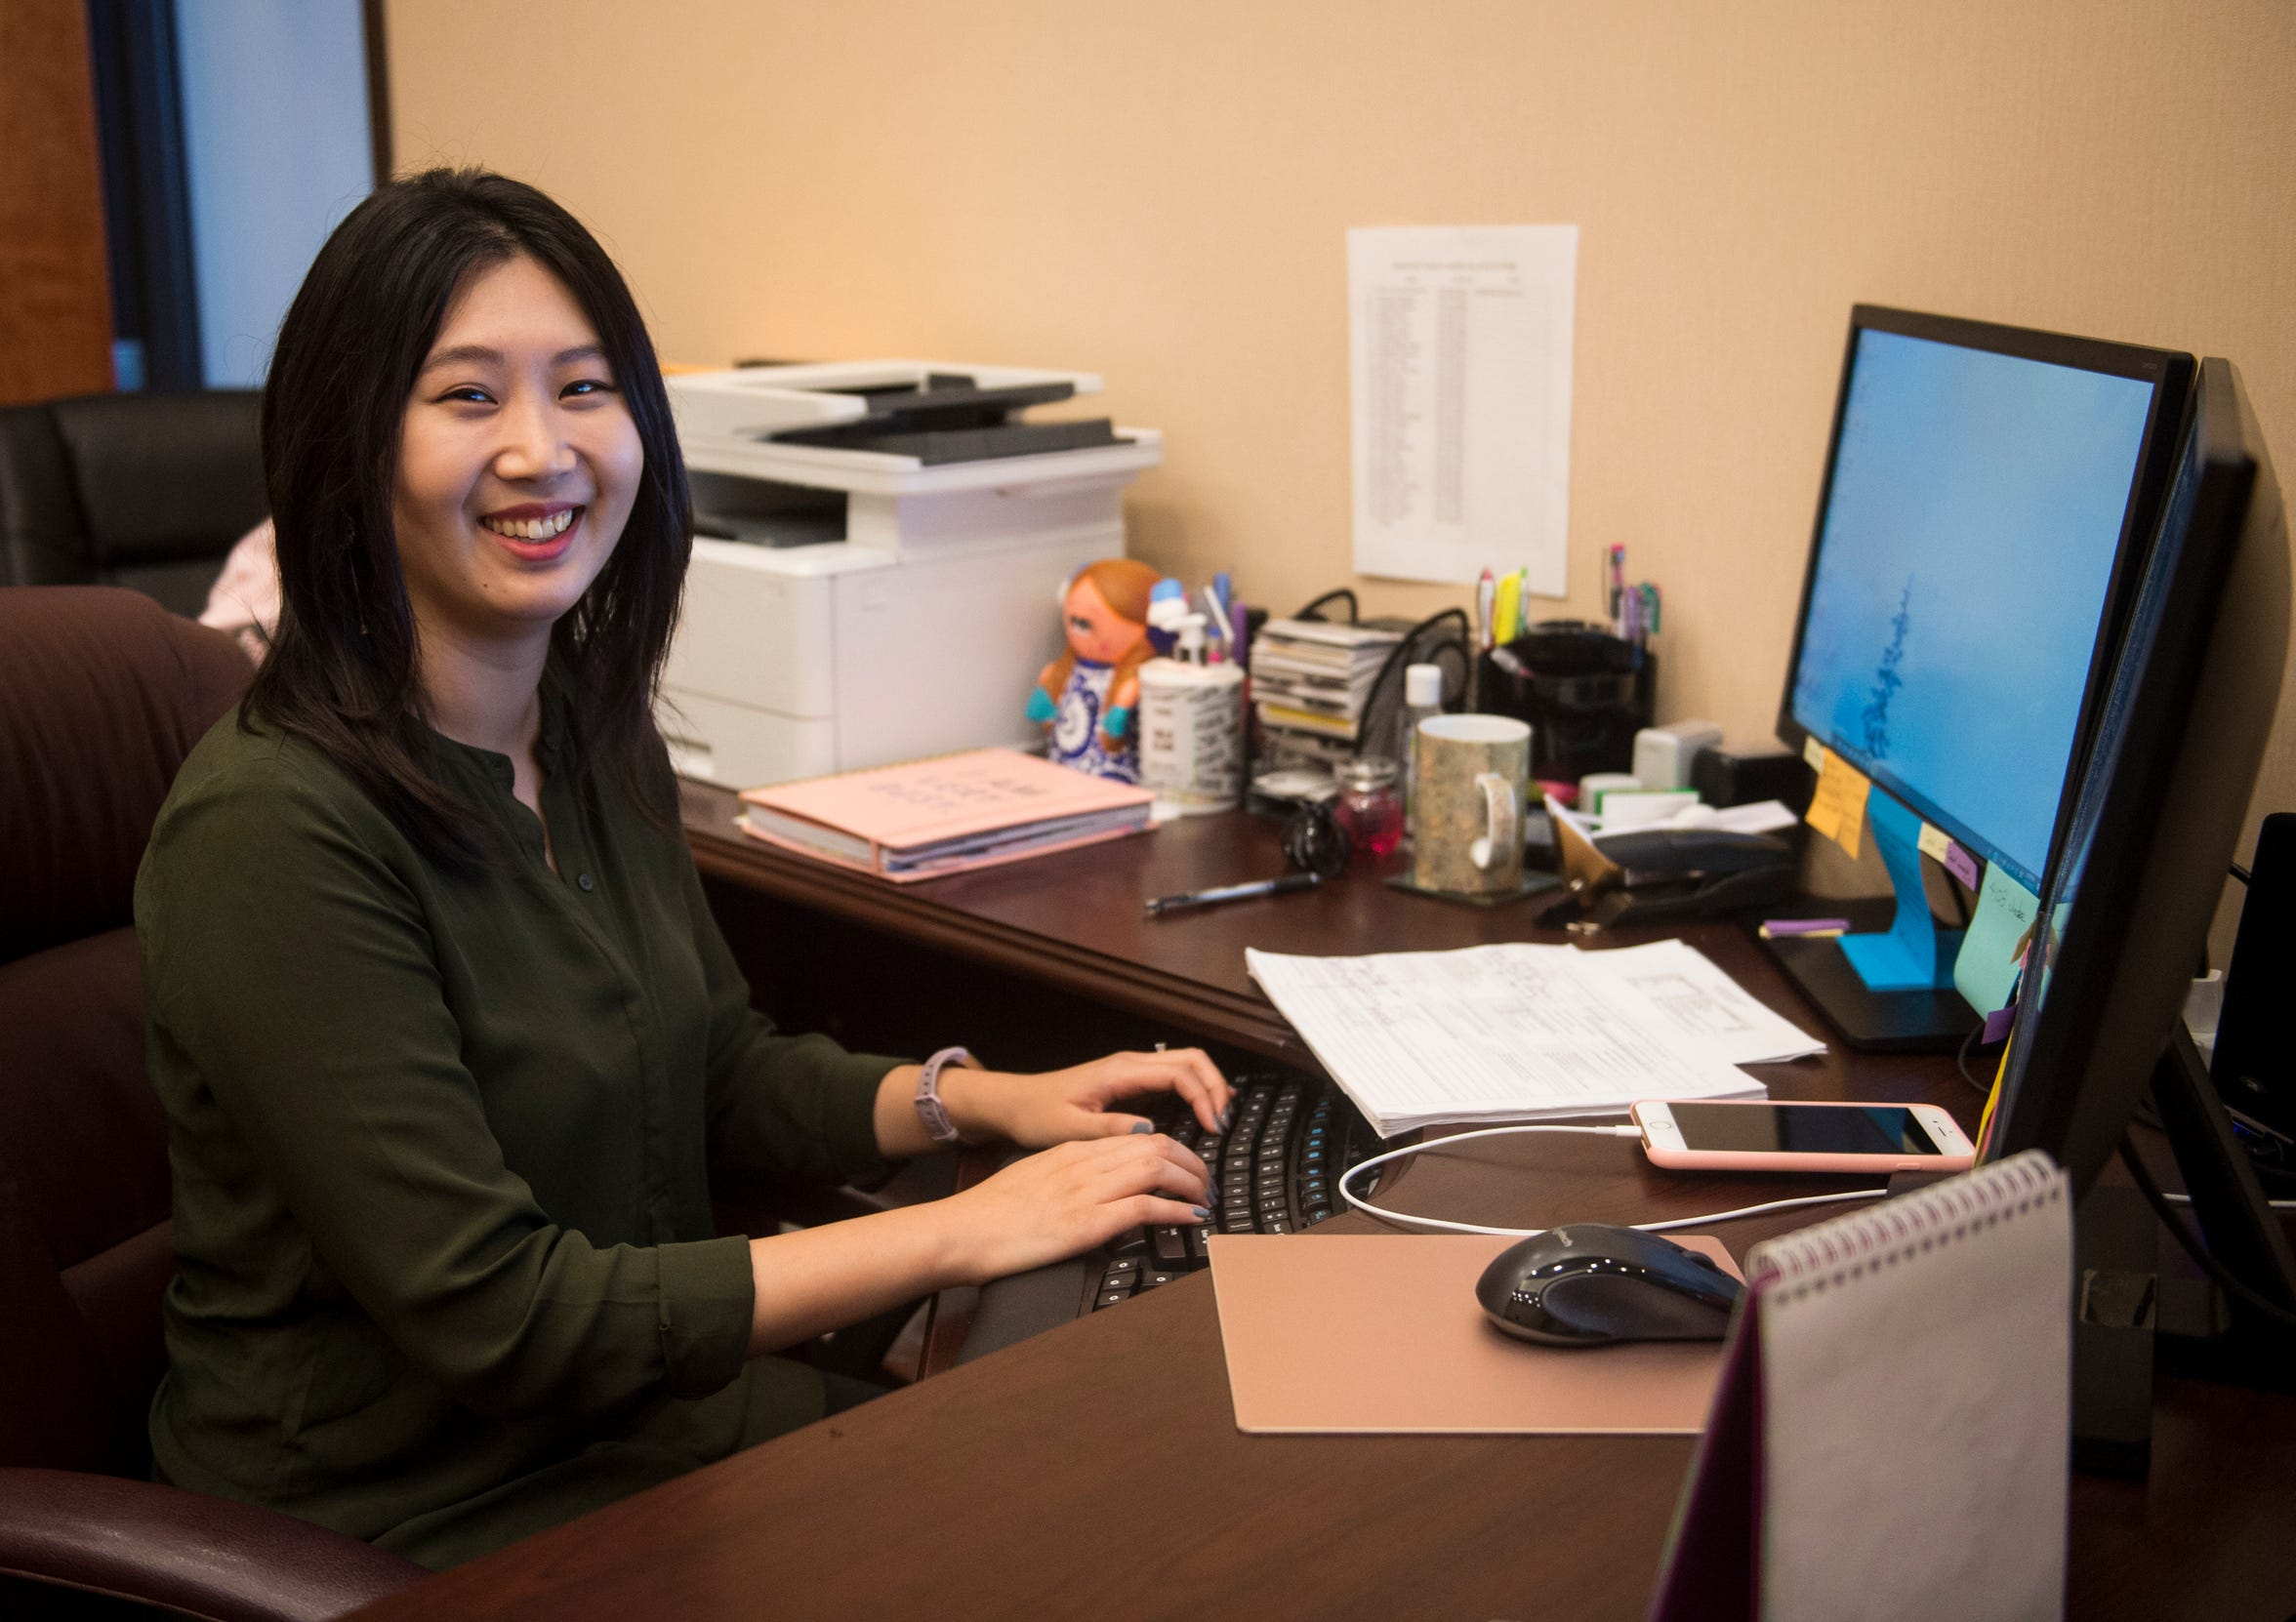 Rachel Jang in her office at Sims Investments in Montgomery, Ala., on Tuesday, Sept. 11, 2018.